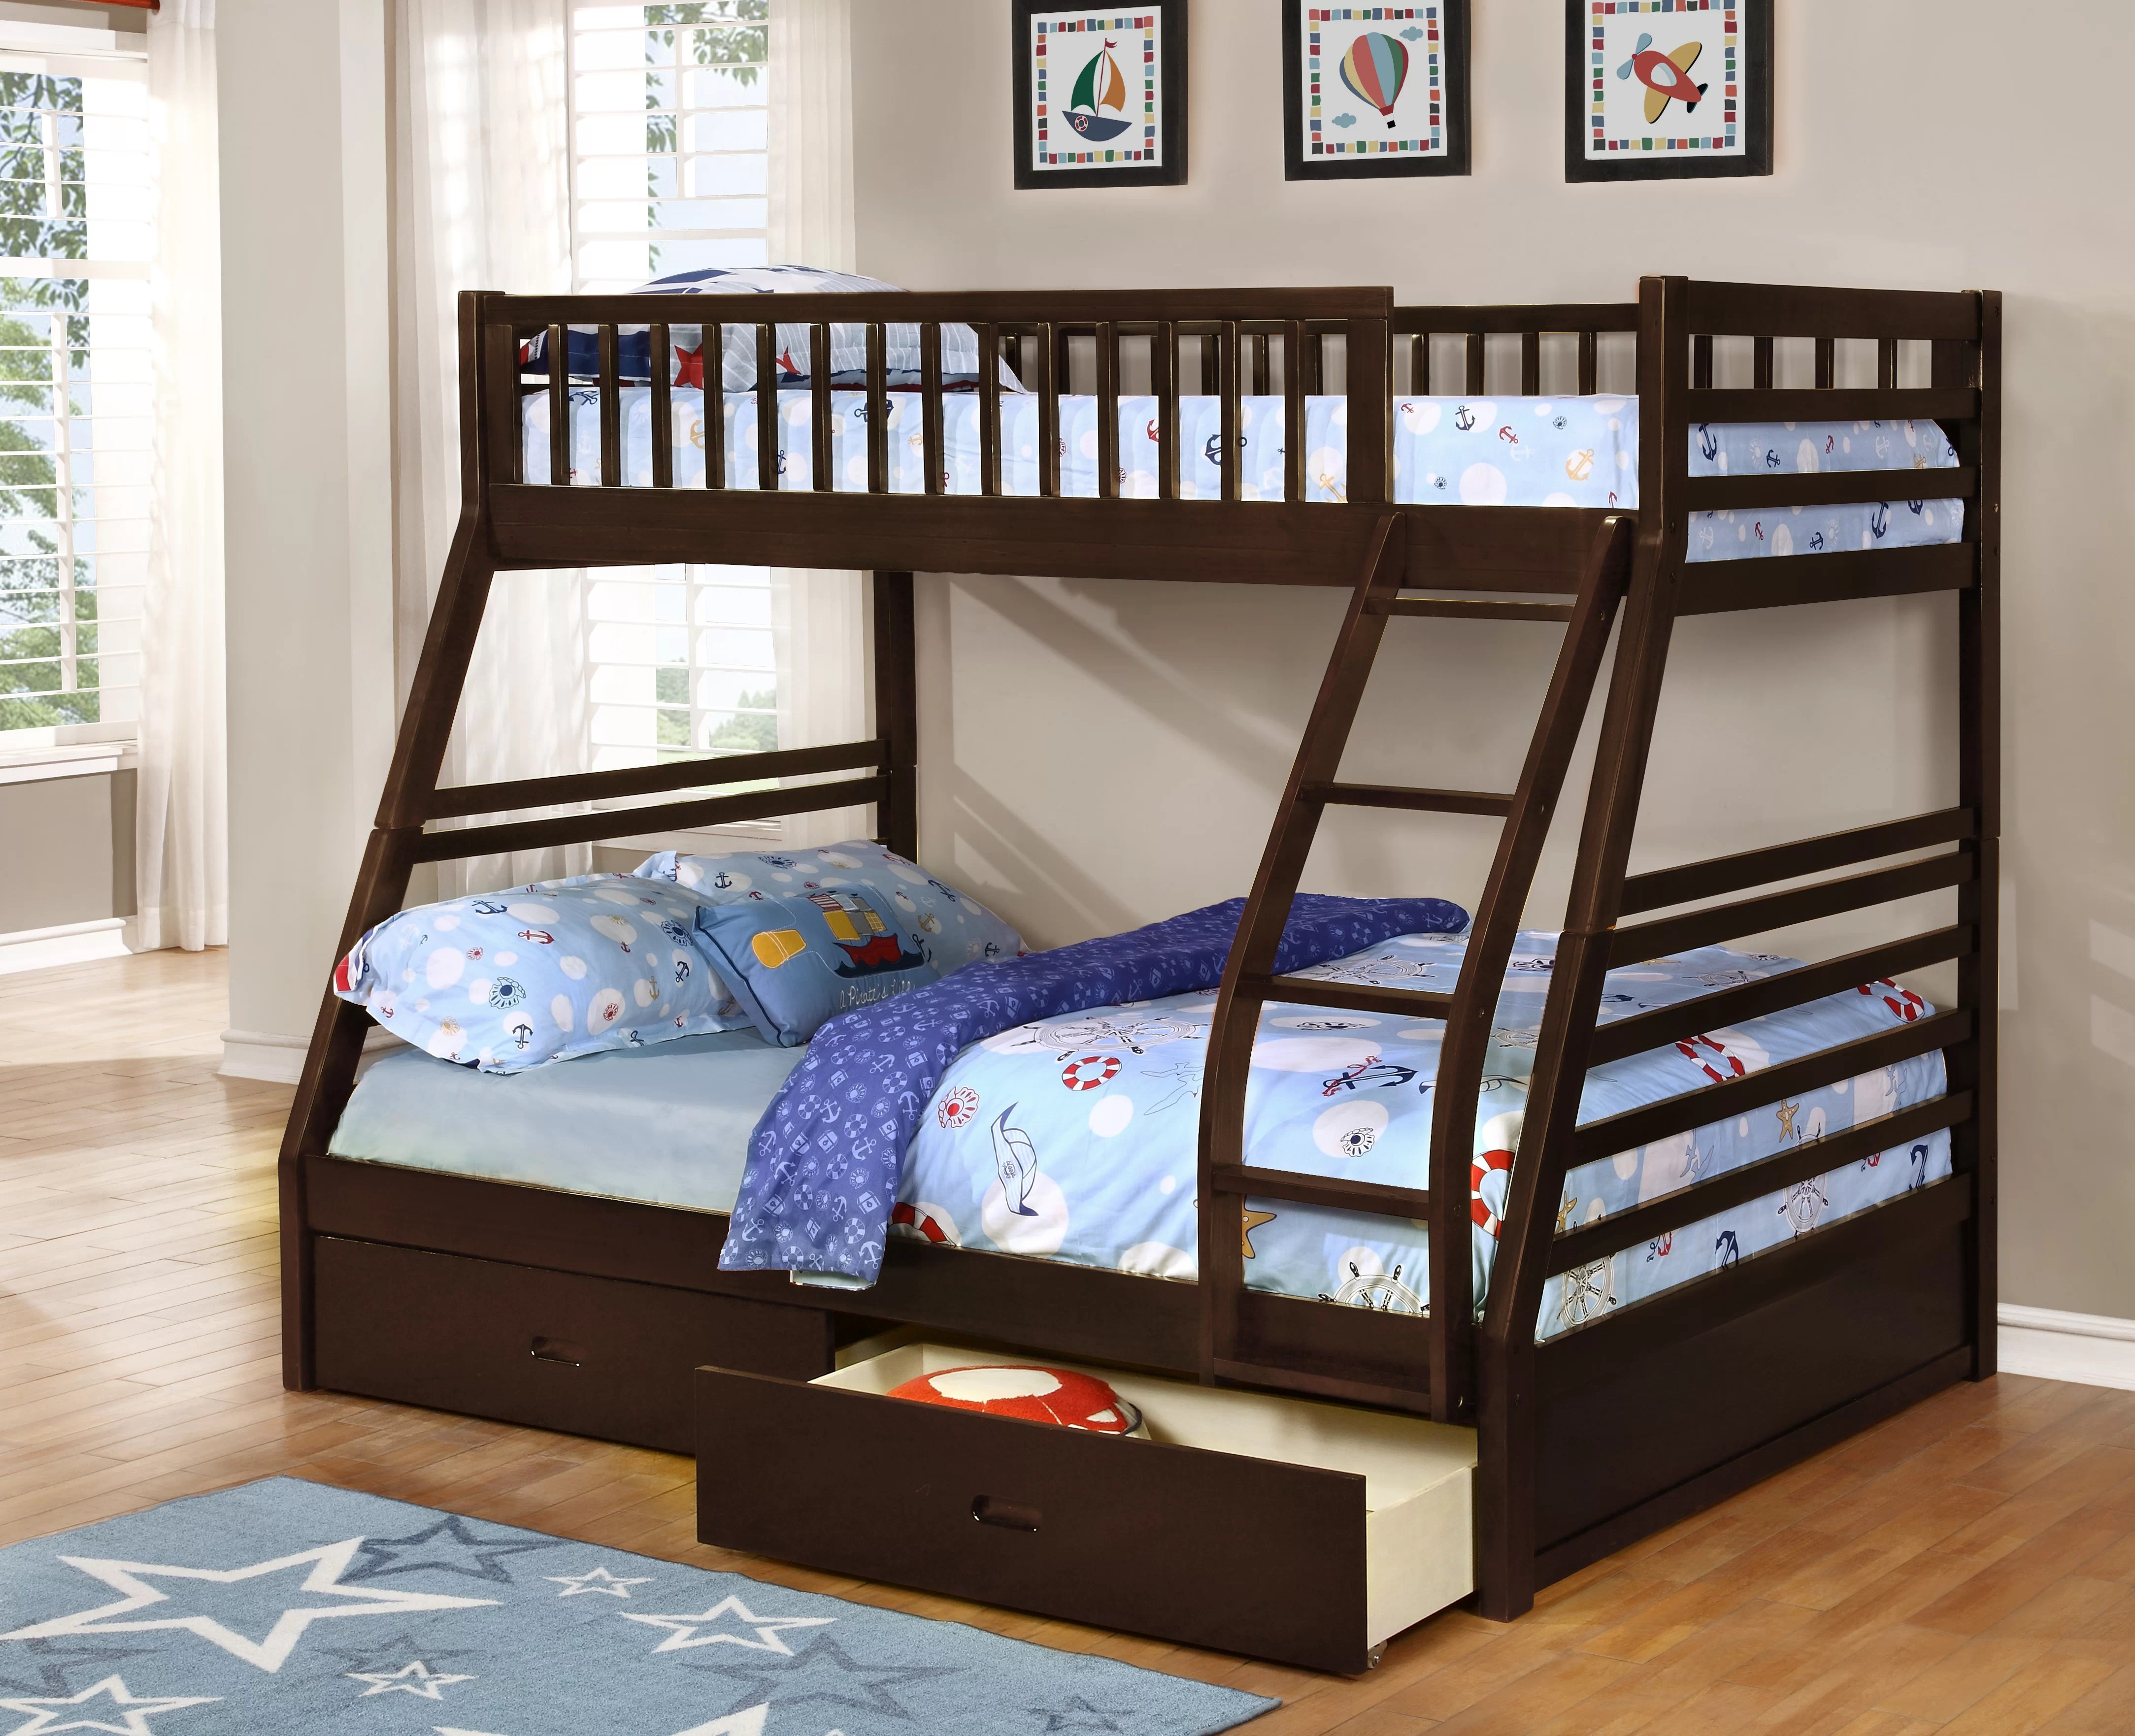 Snooze Bunk Beds Claret Twin Over Full Bunk Bed With Drawers